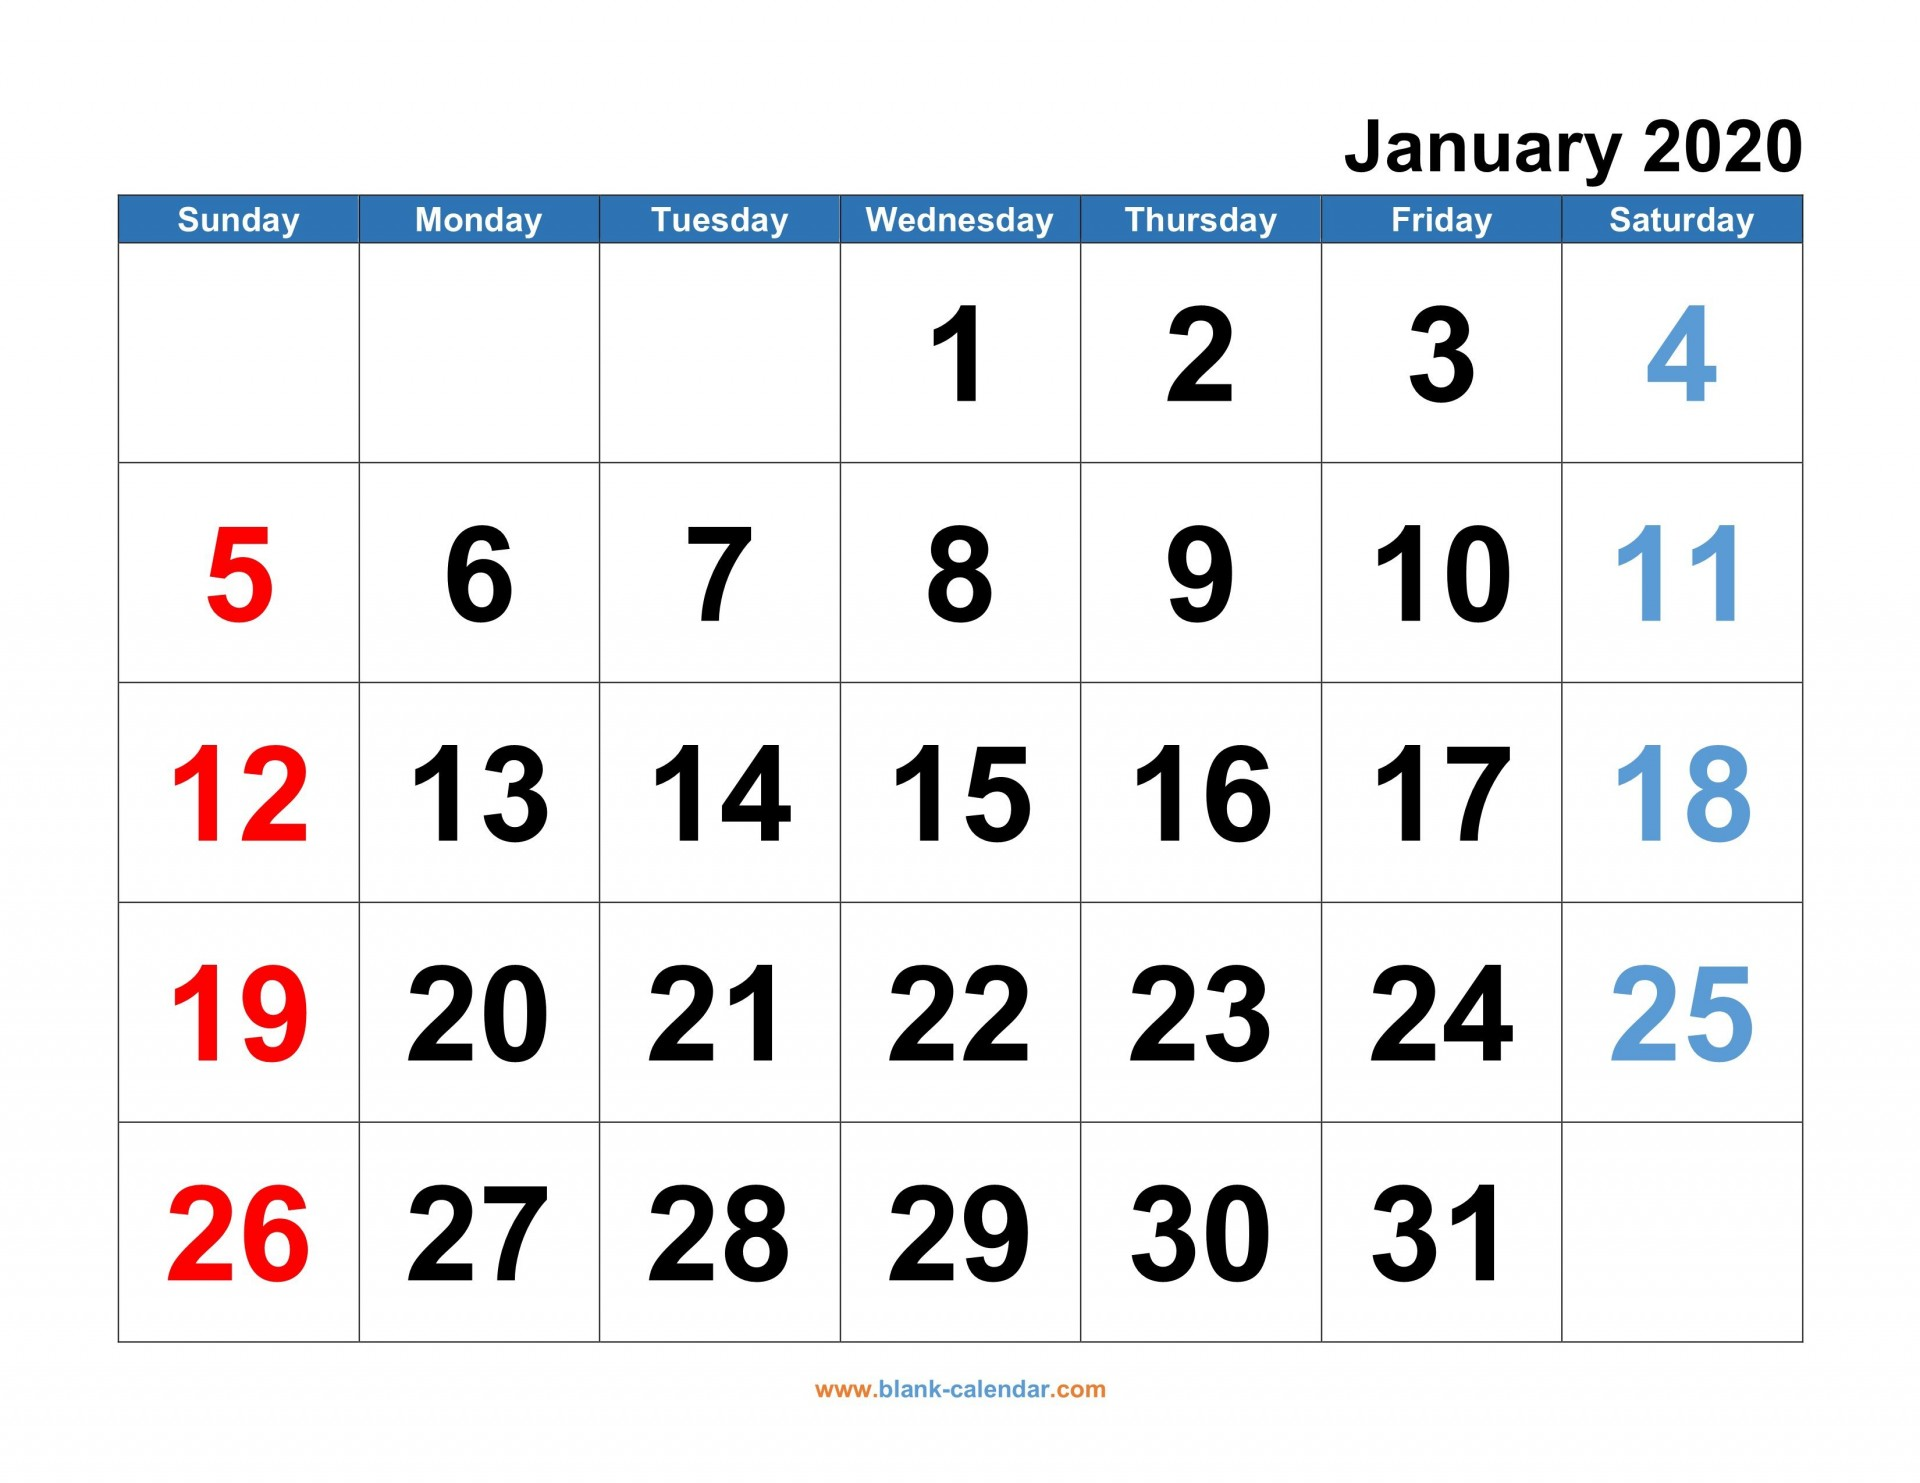 008 Phenomenal Calendar Template Free Download Highest Quality  2020 Powerpoint Table Design 2019 Malaysia1920